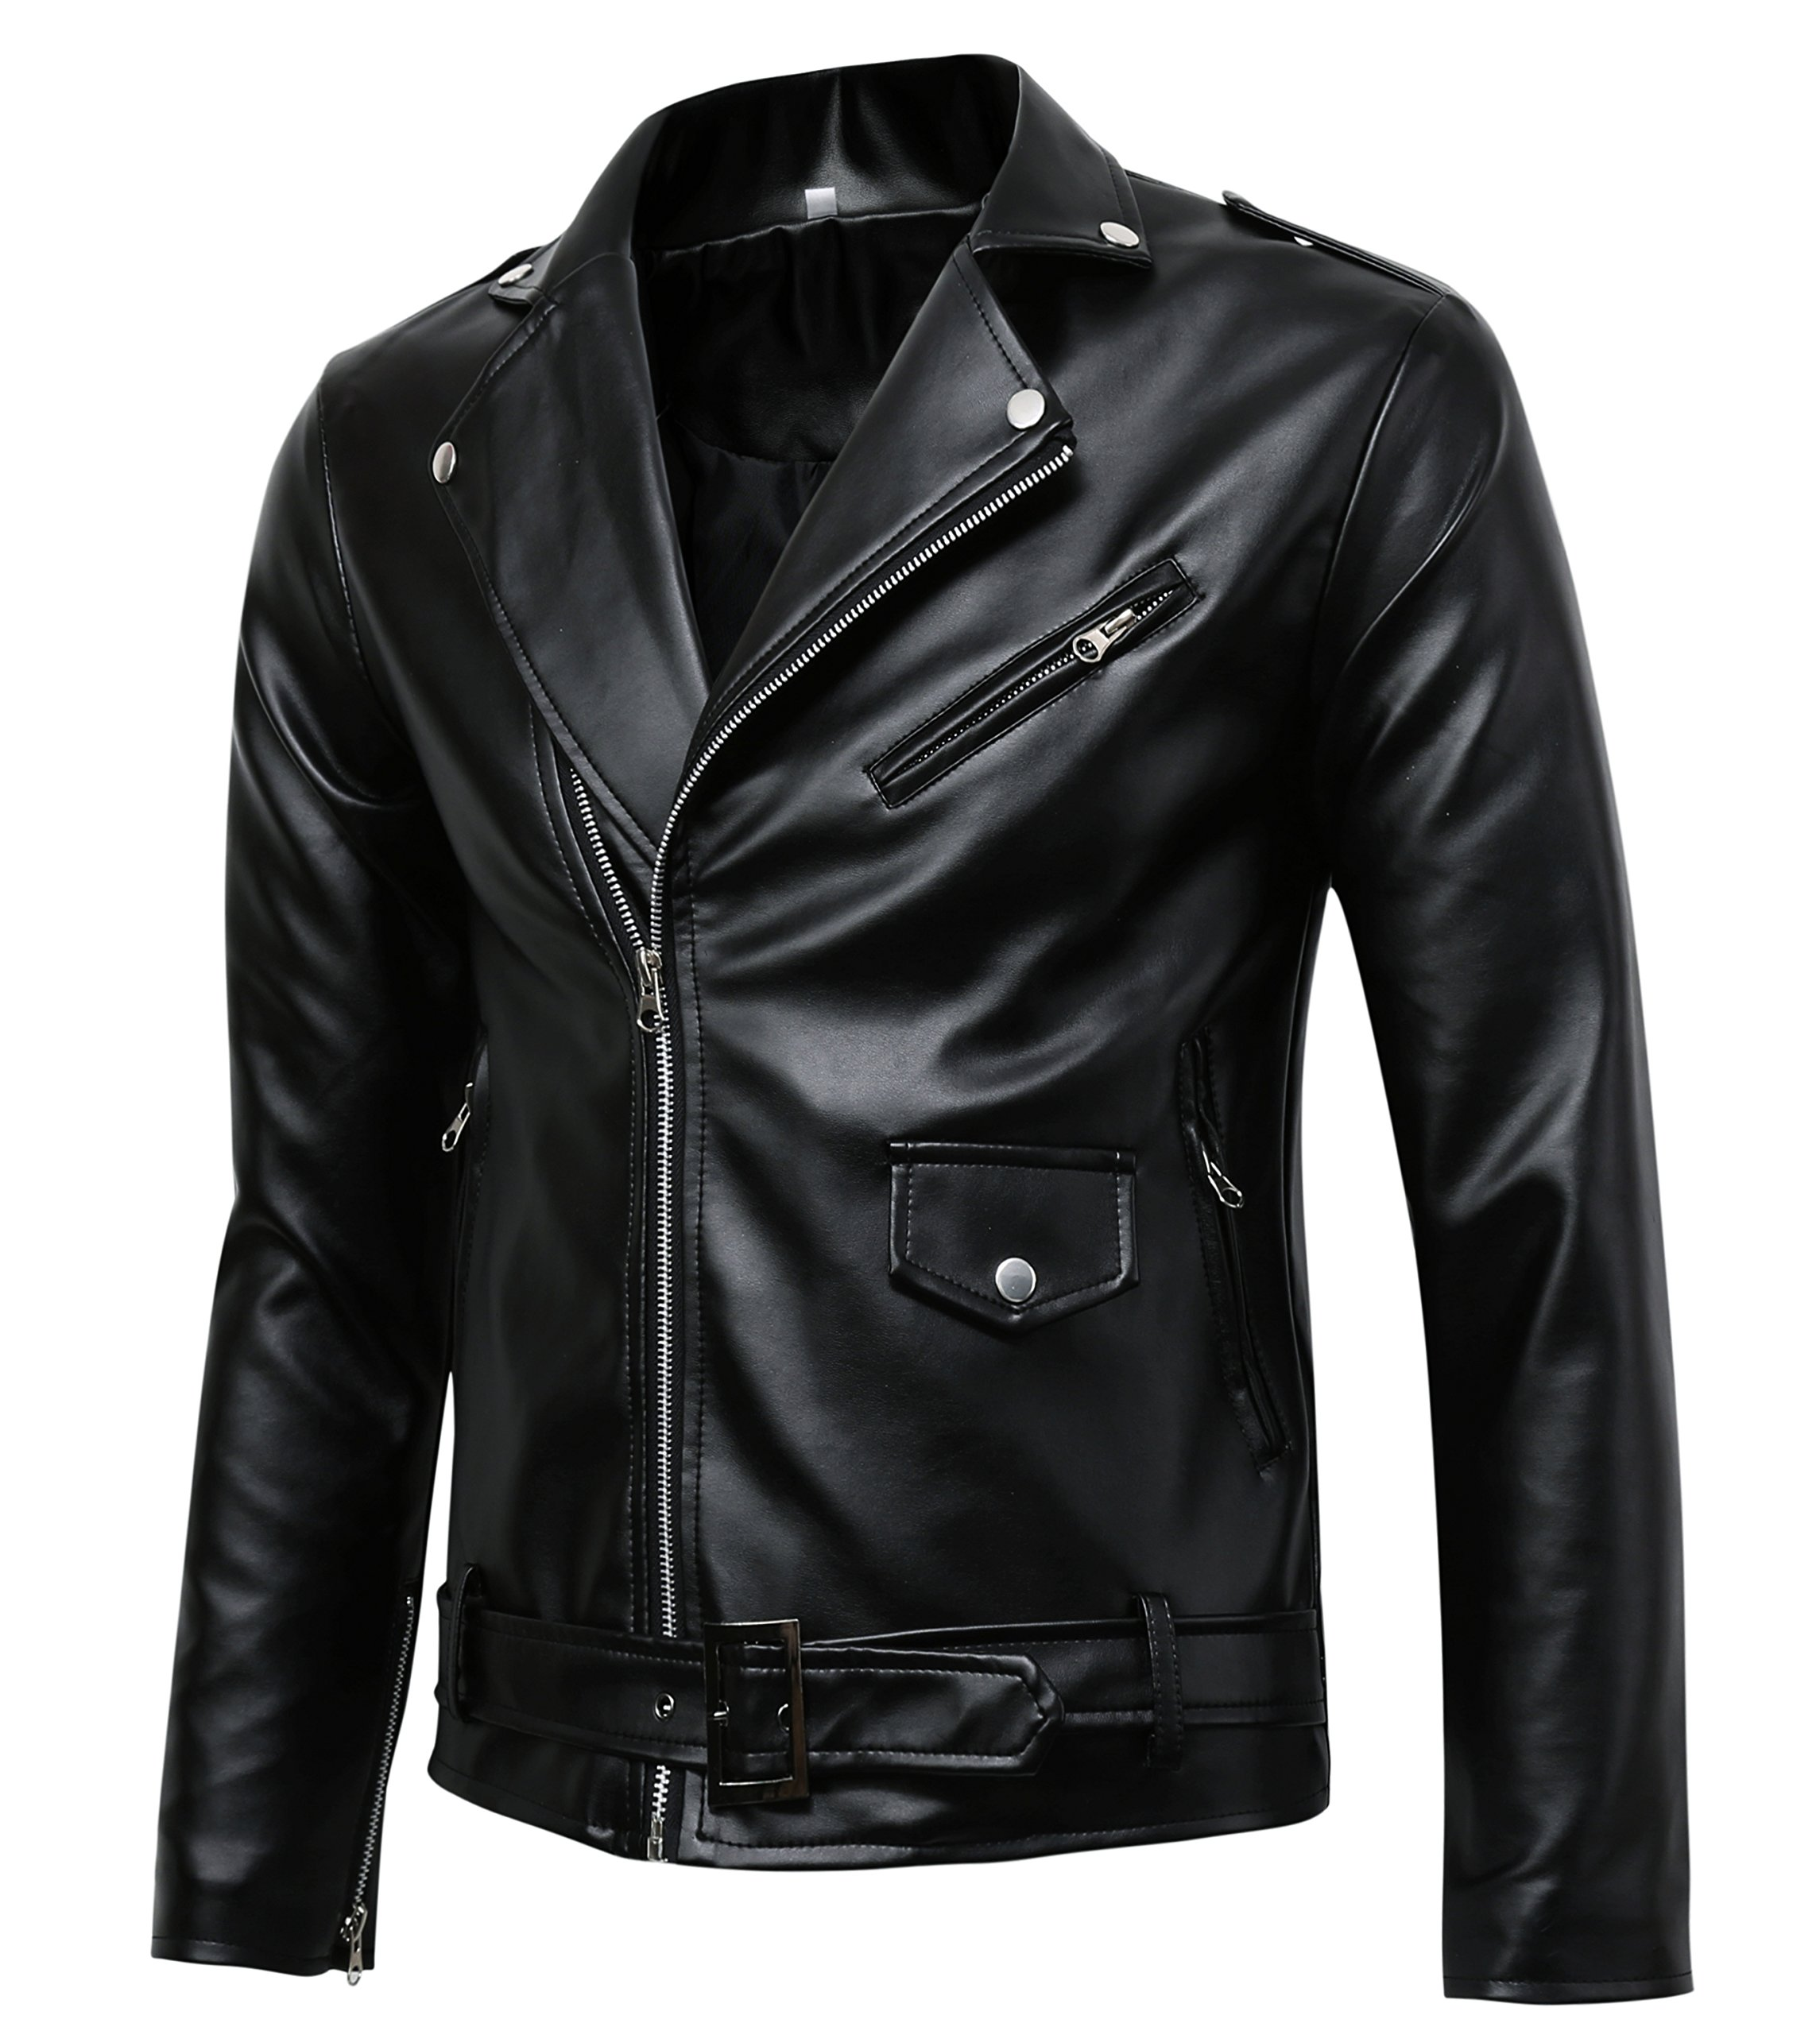 Men's Classic Police Style Faux Leather Motorcycle Jacket (M), Black by Benibos